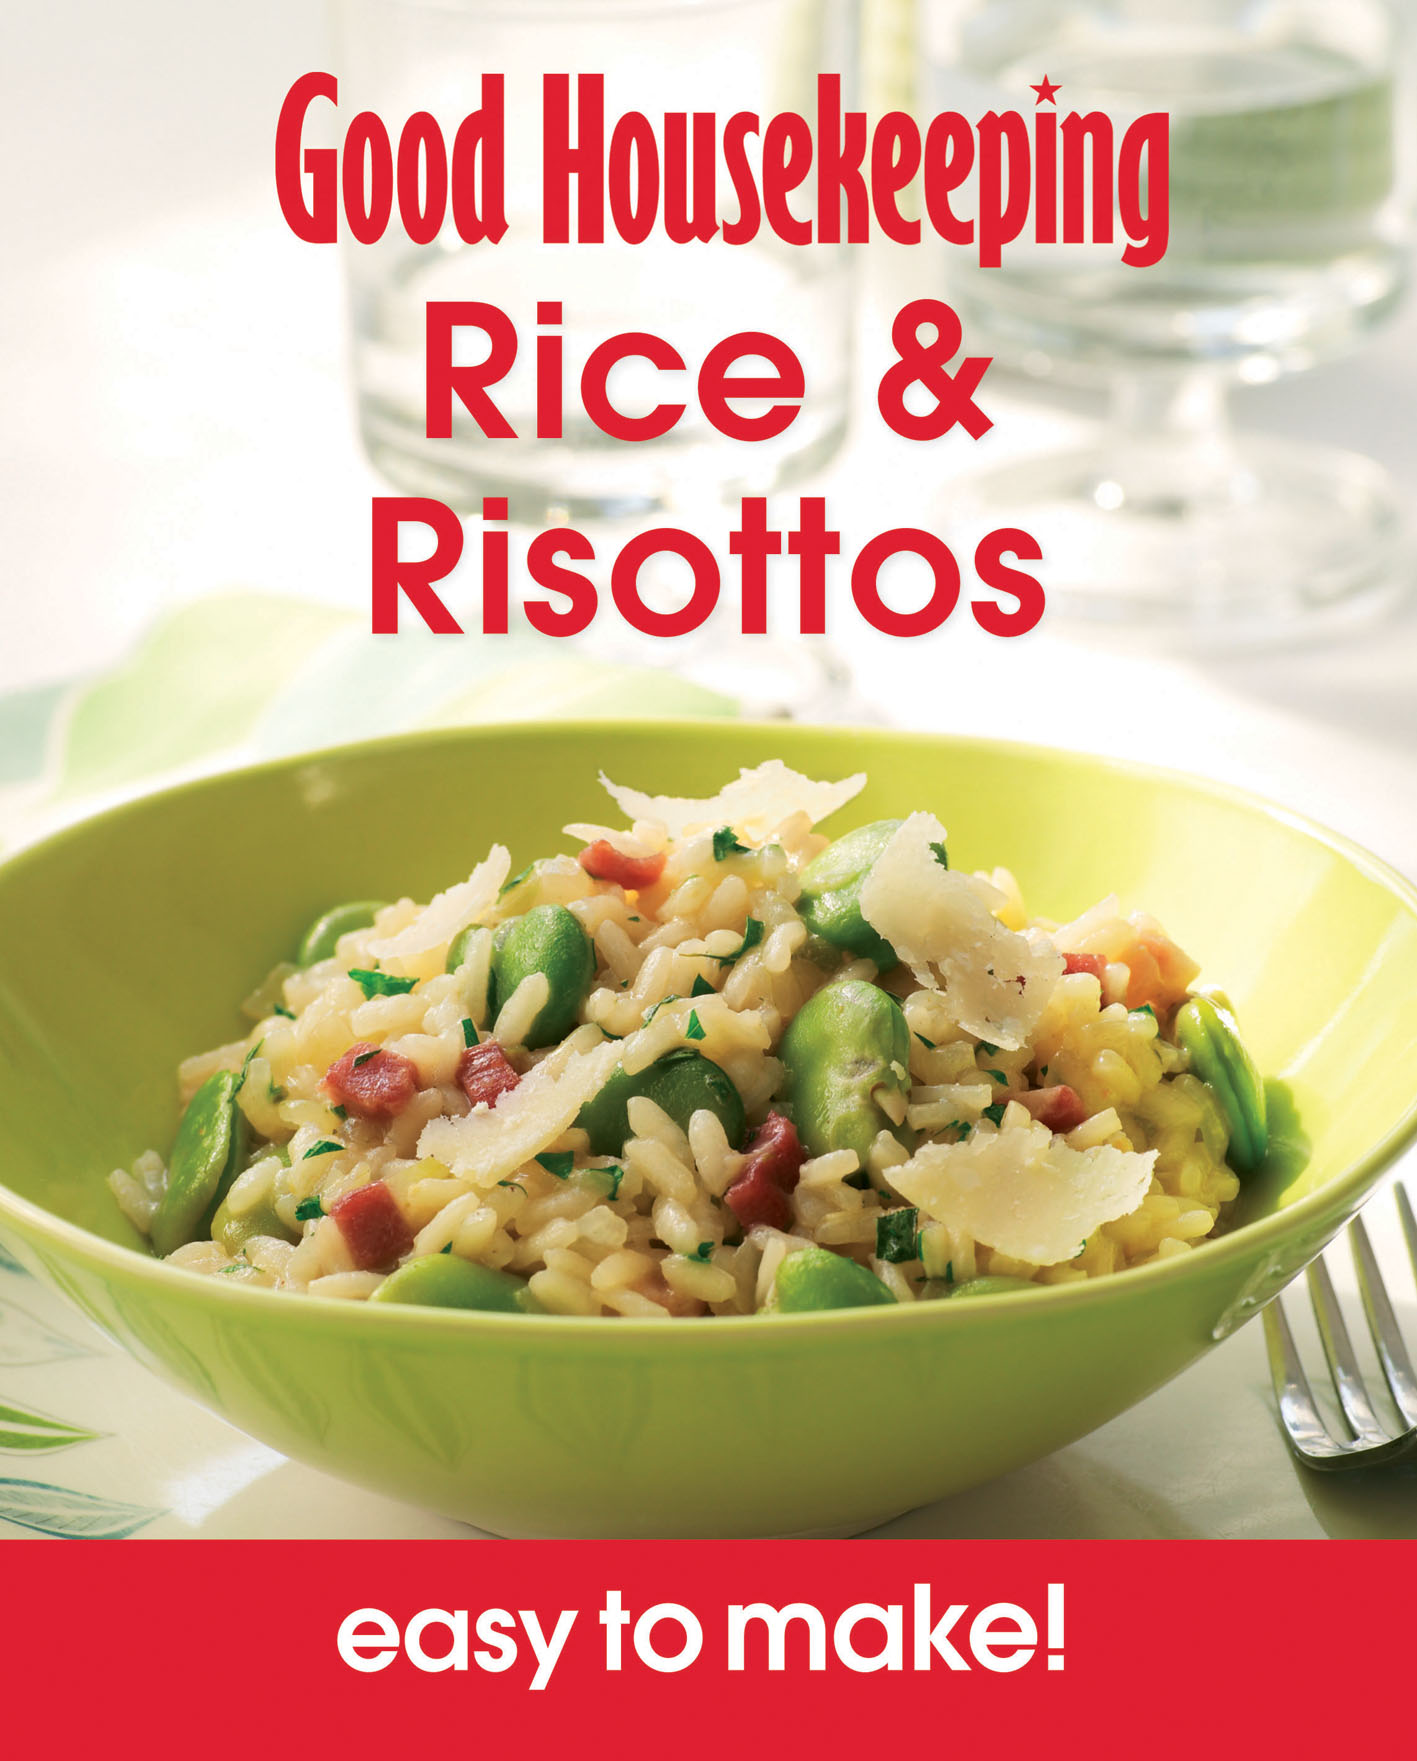 Good Housekeeping Easy to Make! Rice & Risottos